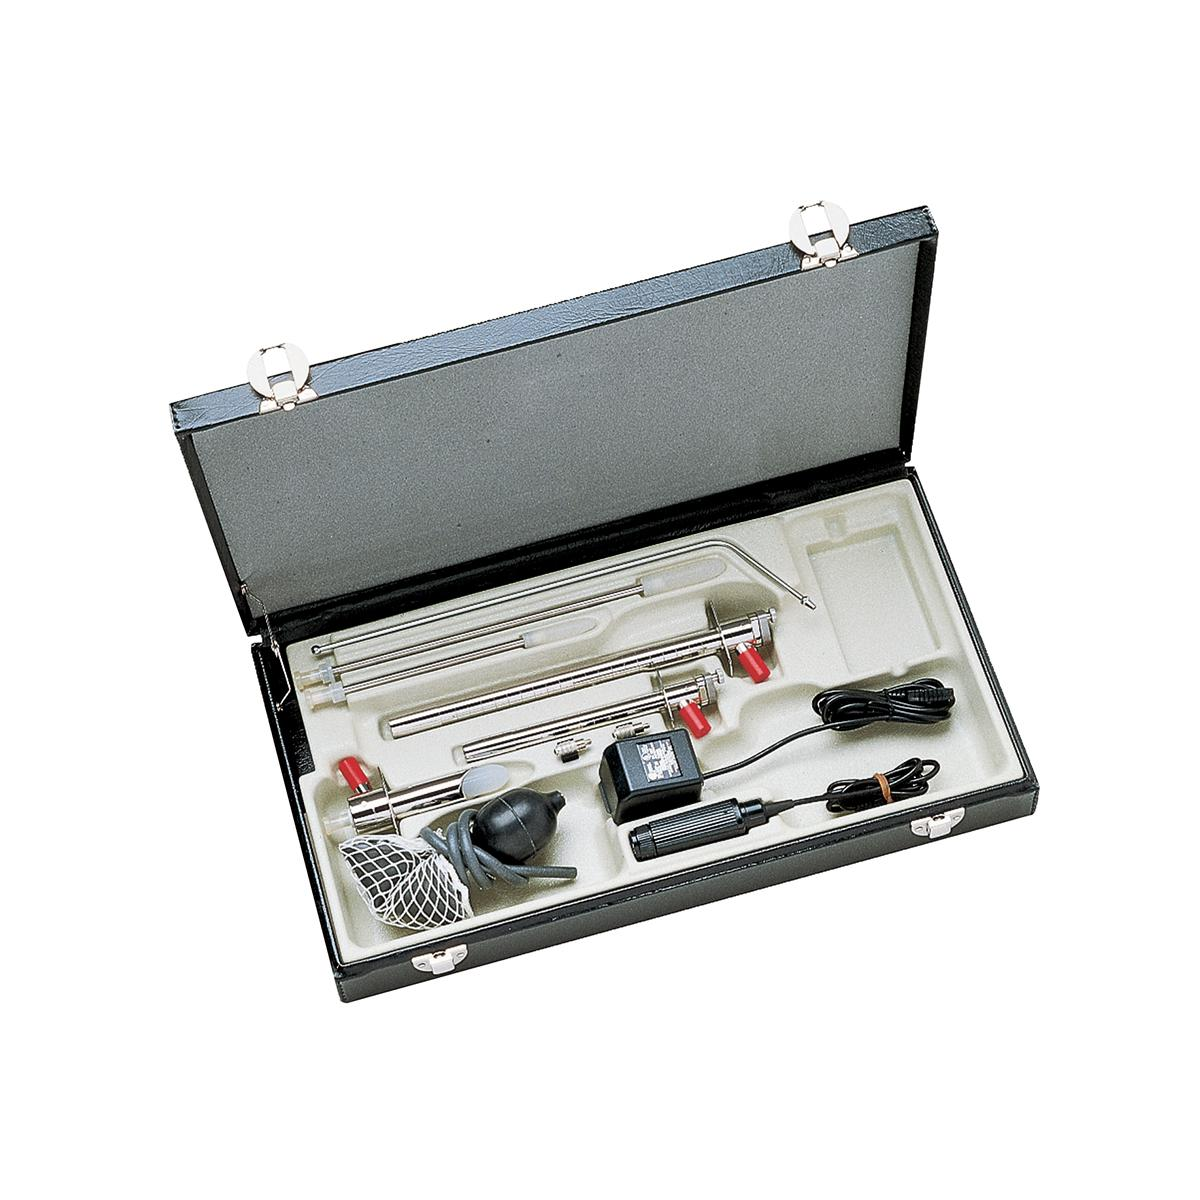 A Welch Allyn Fiber-Optic Sigmoidoscope set in its carry case, featuring separate chambers for scopes, insufflation bulb and power supplies.